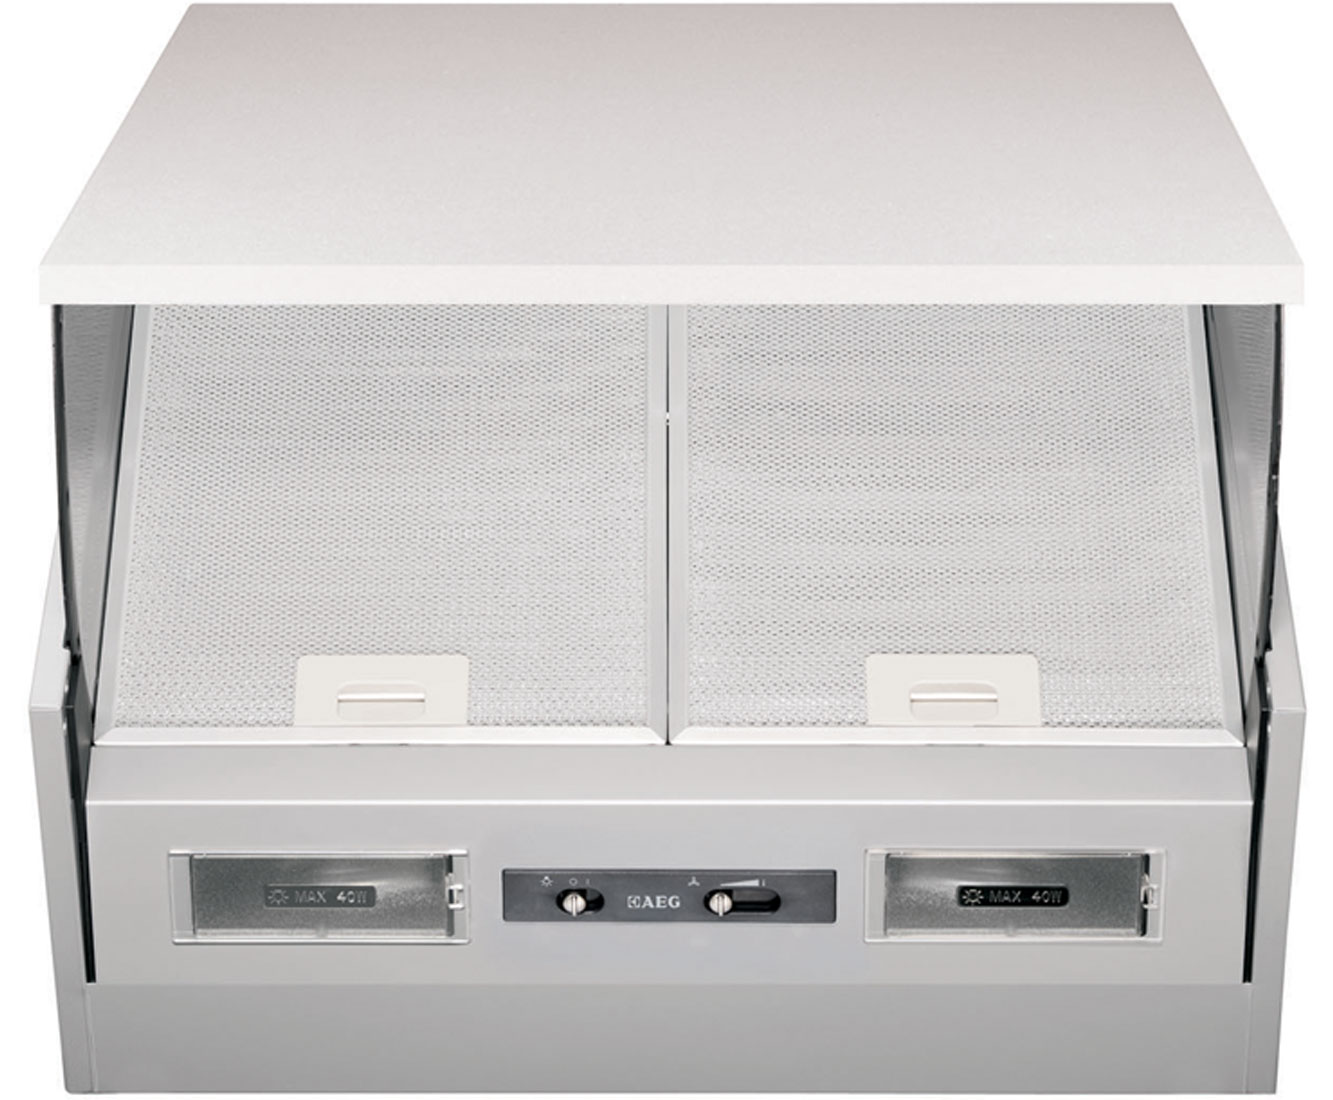 AEG Competence X56342SE10 Integrated Cooker Hood in Stainless Steel